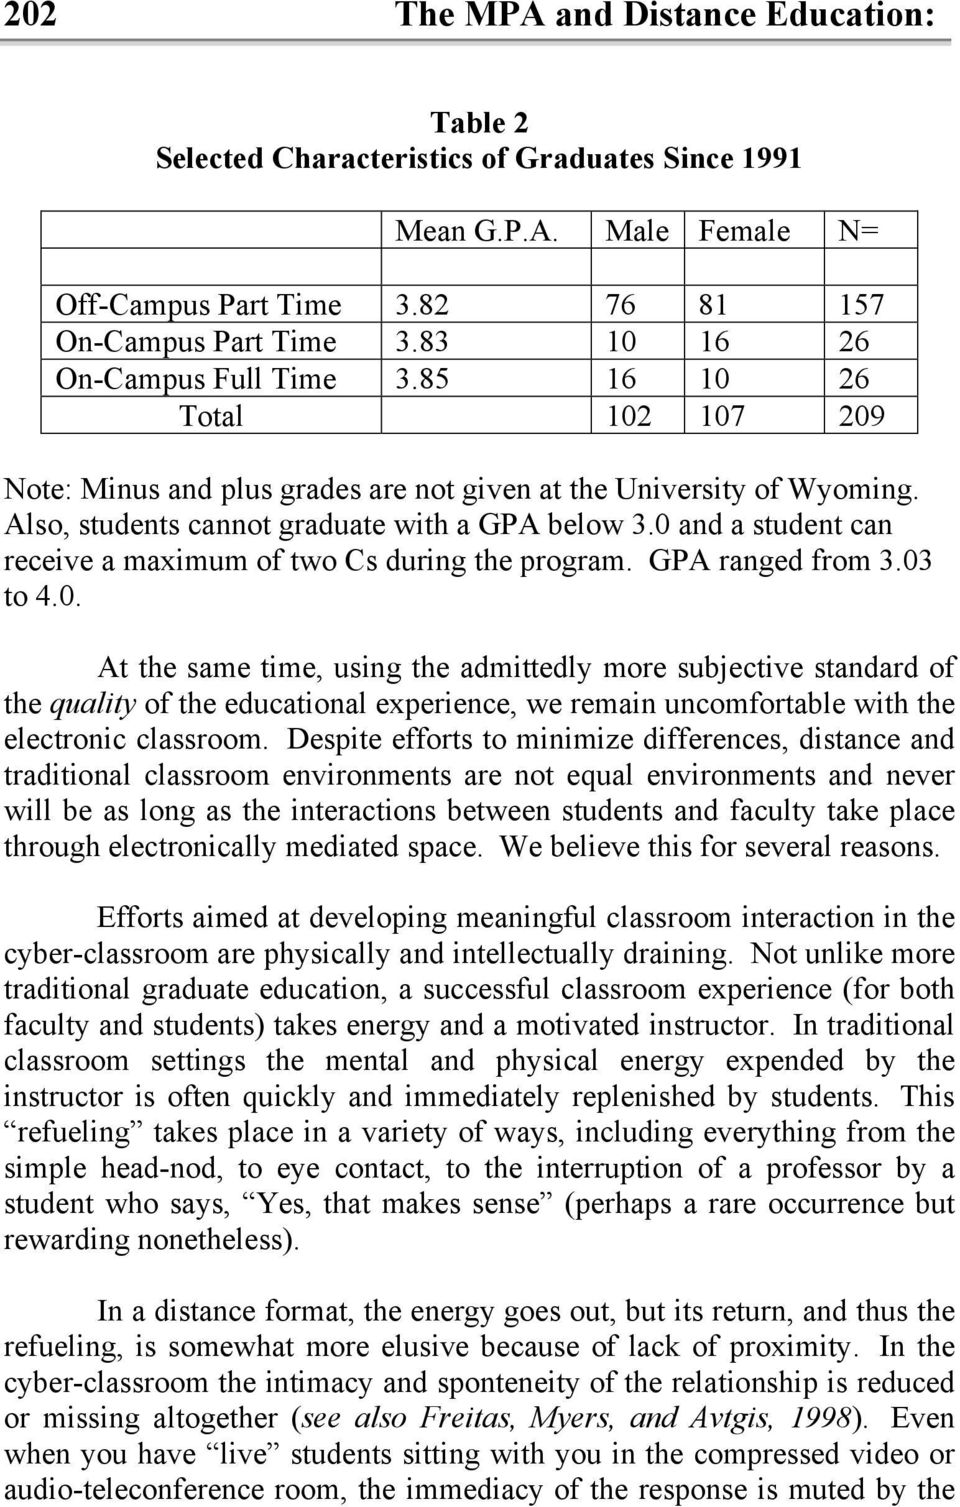 0 and a student can receive a maximum of two Cs during the program. GPA ranged from 3.03 to 4.0. At the same time, using the admittedly more subjective standard of the quality of the educational experience, we remain uncomfortable with the electronic classroom.